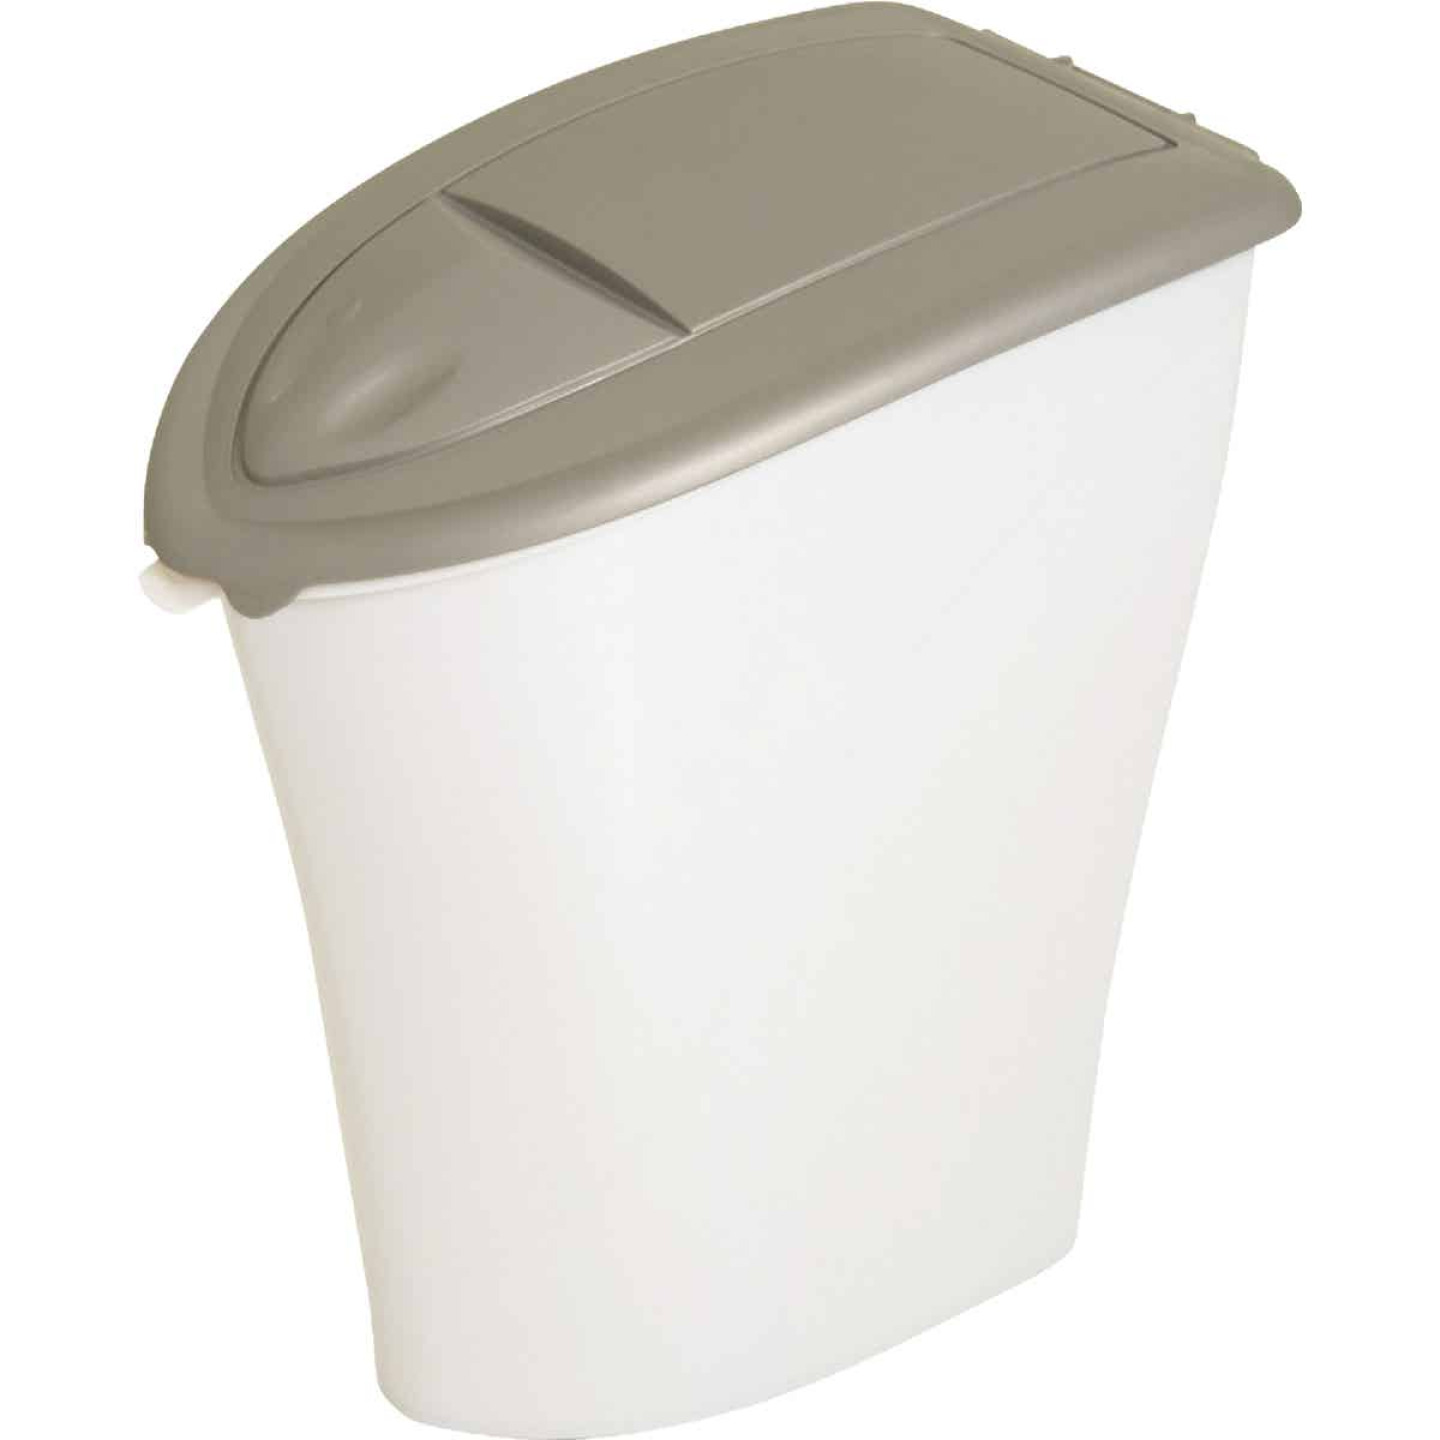 Petmate Ultra 10 Lb. Plastic Pet Food Bin Image 1